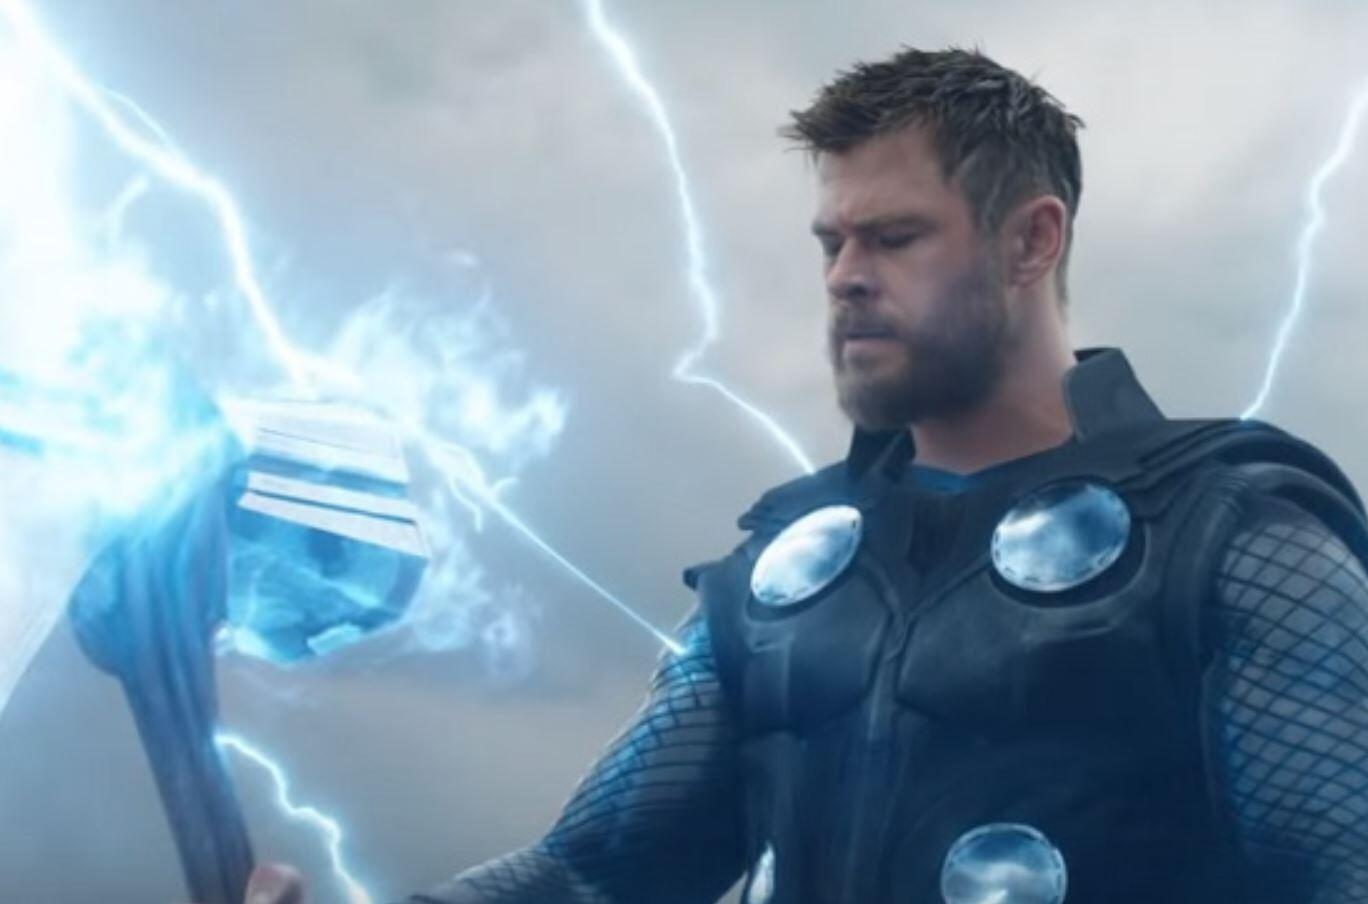 'Avengers: Endgame' Tickets Reportedly Go On Sale April 2nd